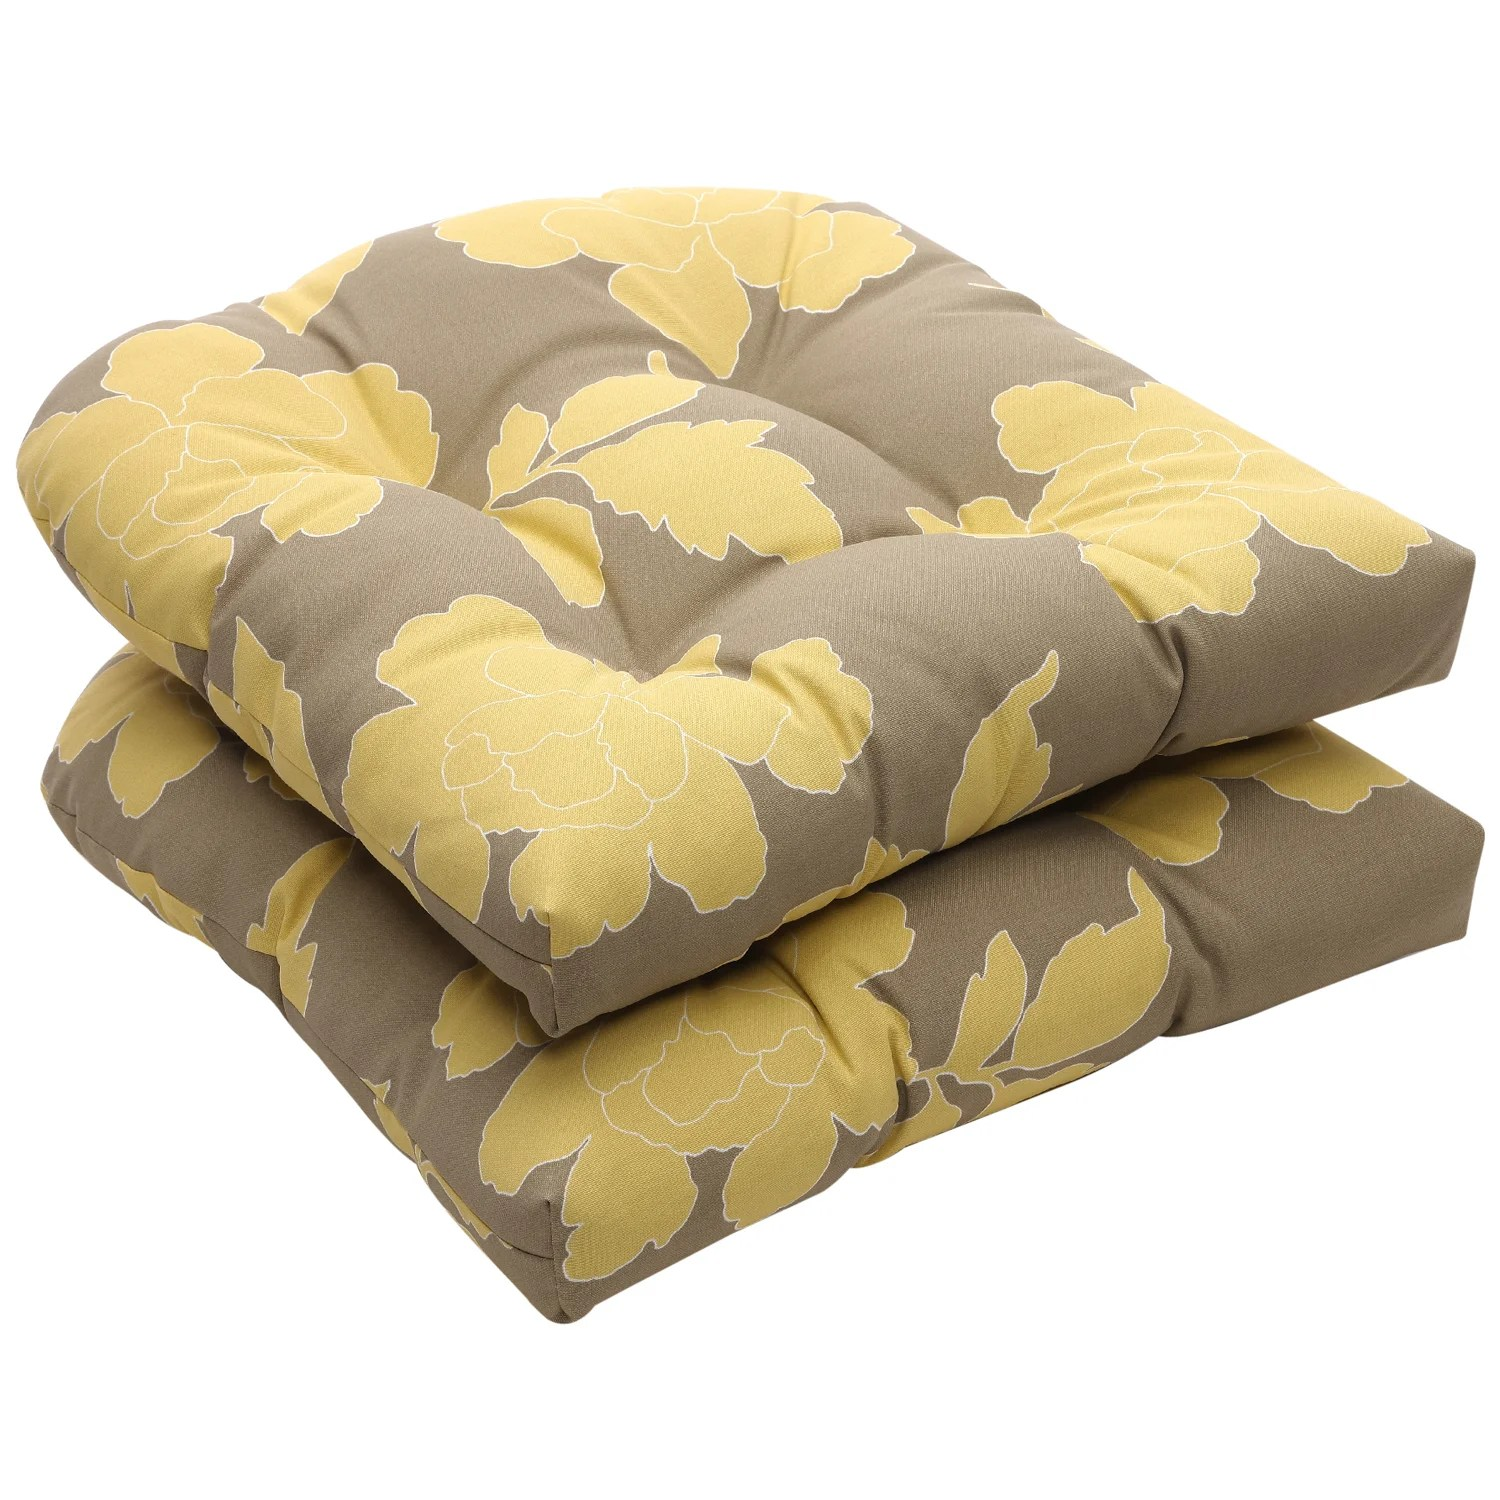 Gray Chair Cushions Outdoor Gray And Yellow Floral Wicker Seat Cushions Set